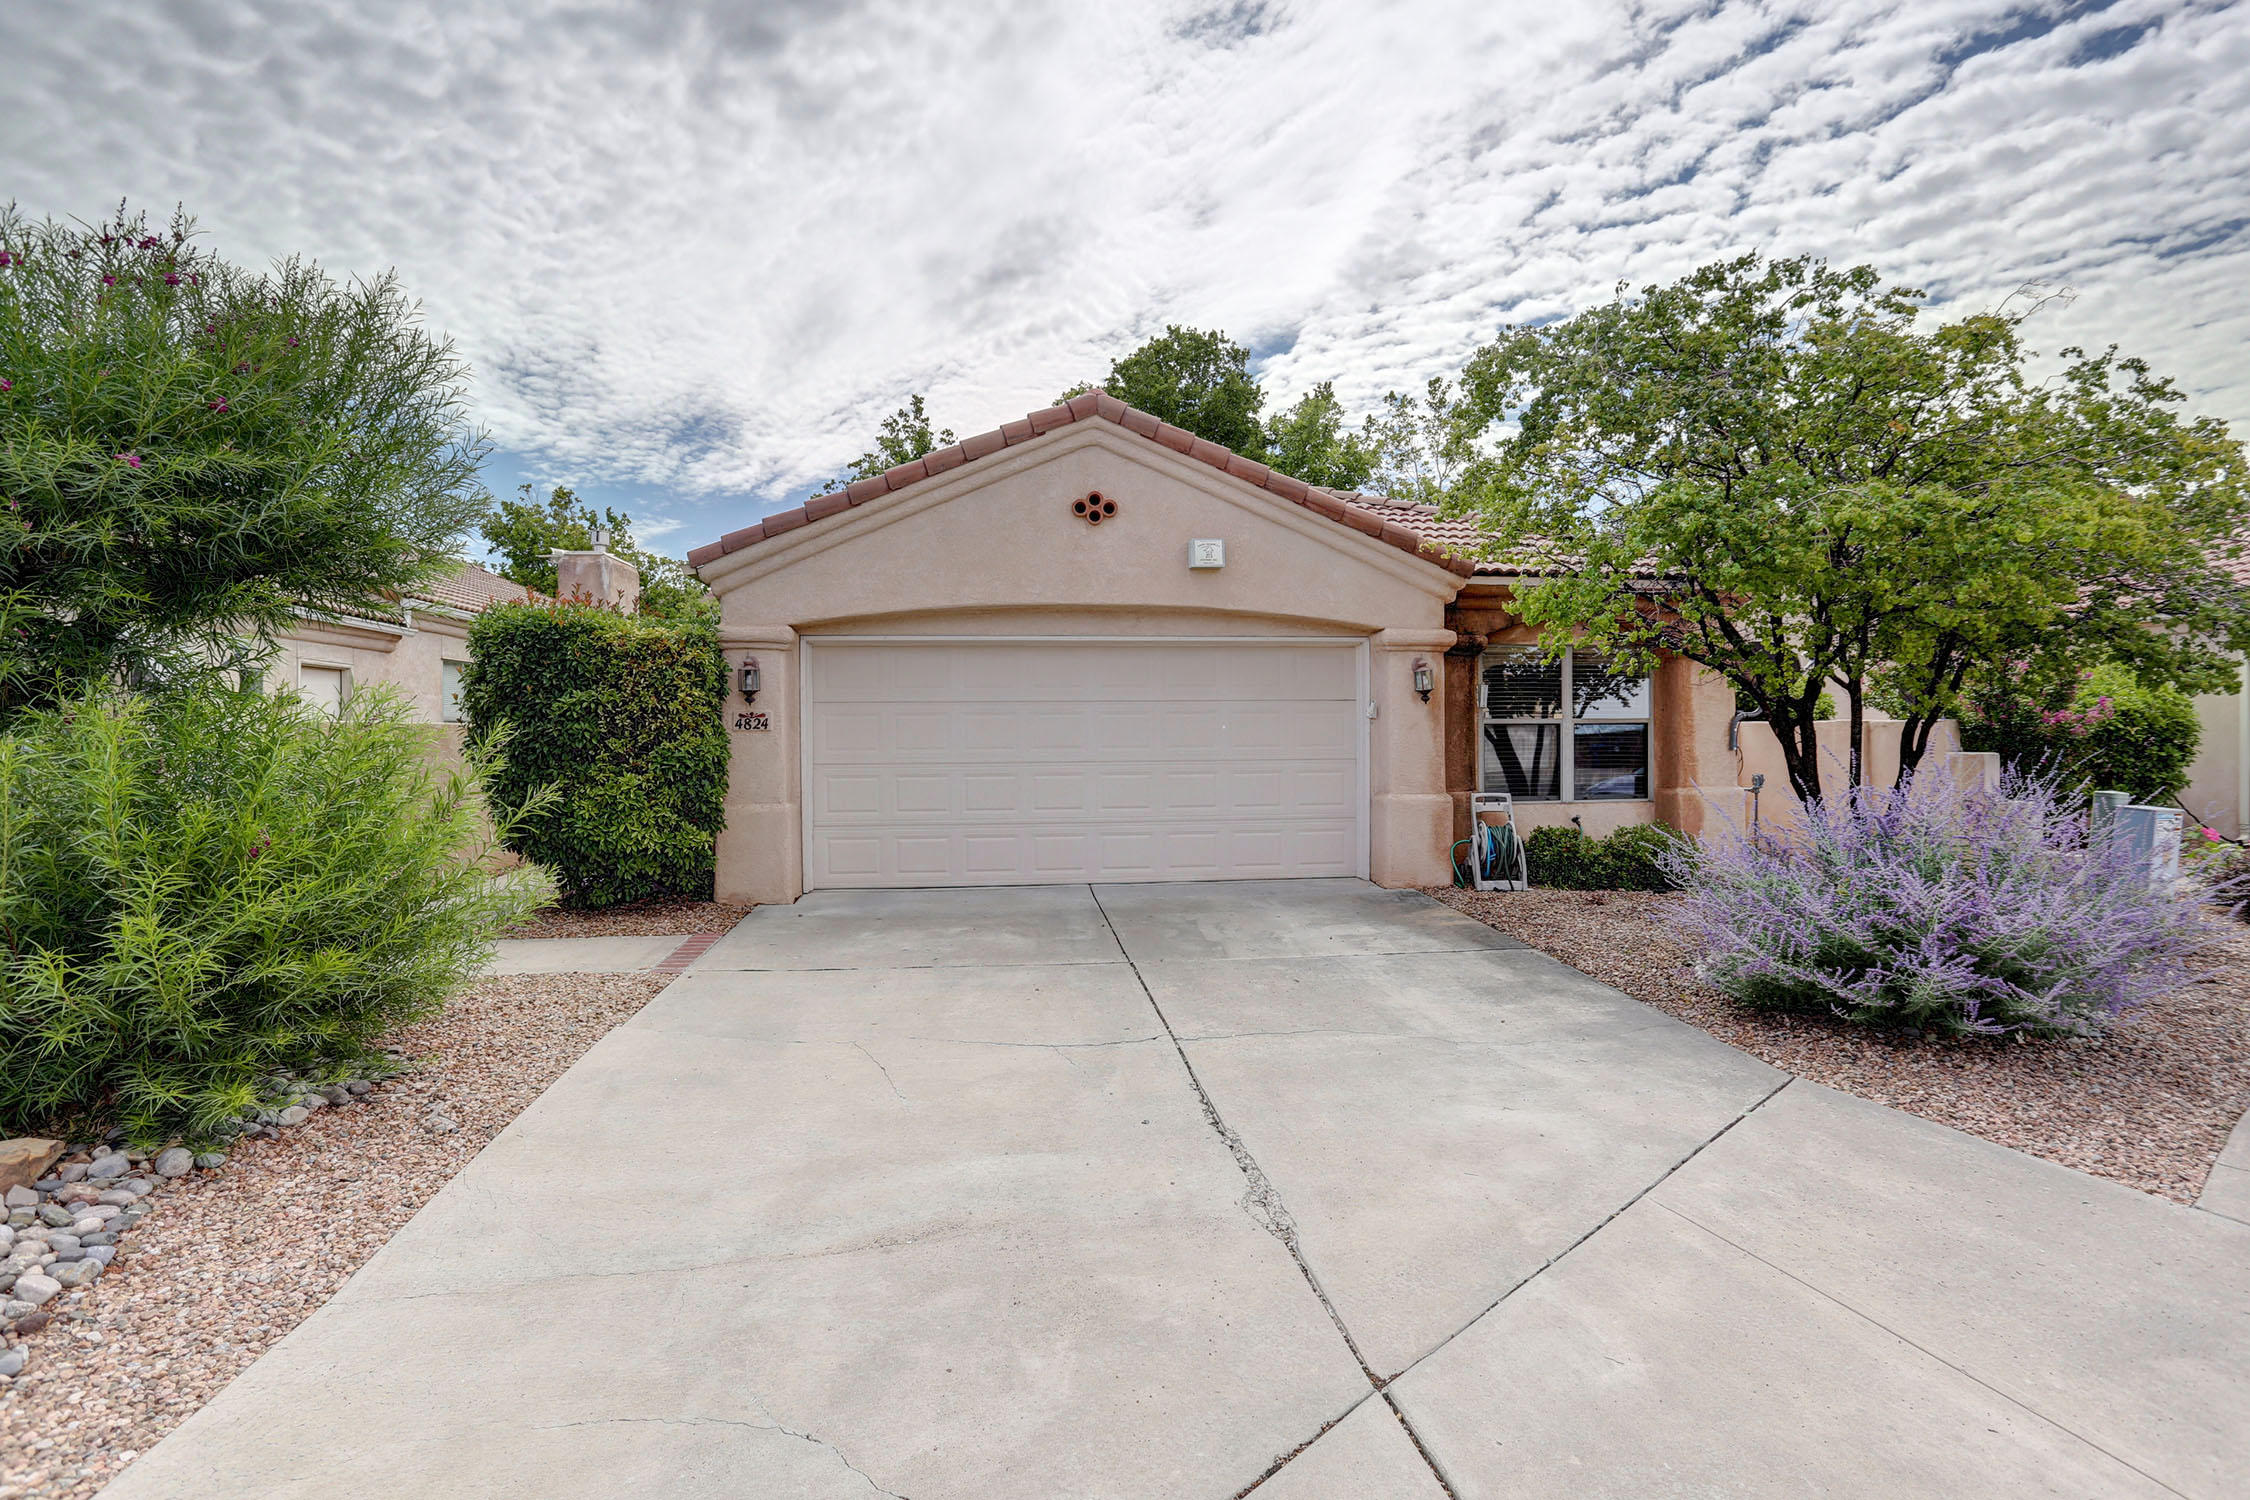 4824 Skyline Ridge,Albuquerque,New Mexico,United States 87111,3 Bedrooms Bedrooms,2 BathroomsBathrooms,Residential,Skyline Ridge,924358